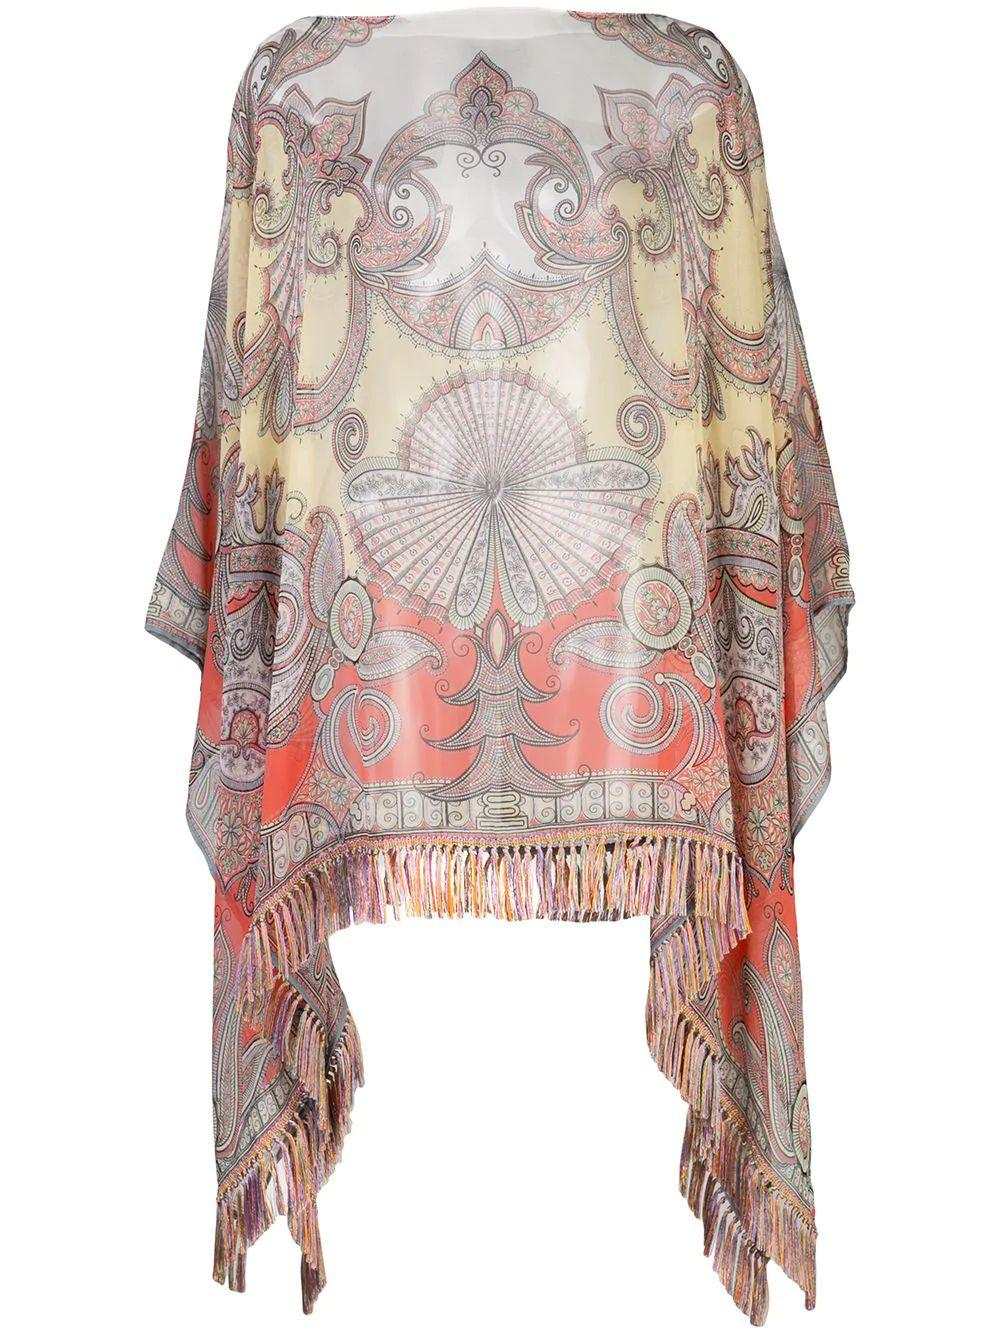 Patched Print Poncho Item # 15804-8920